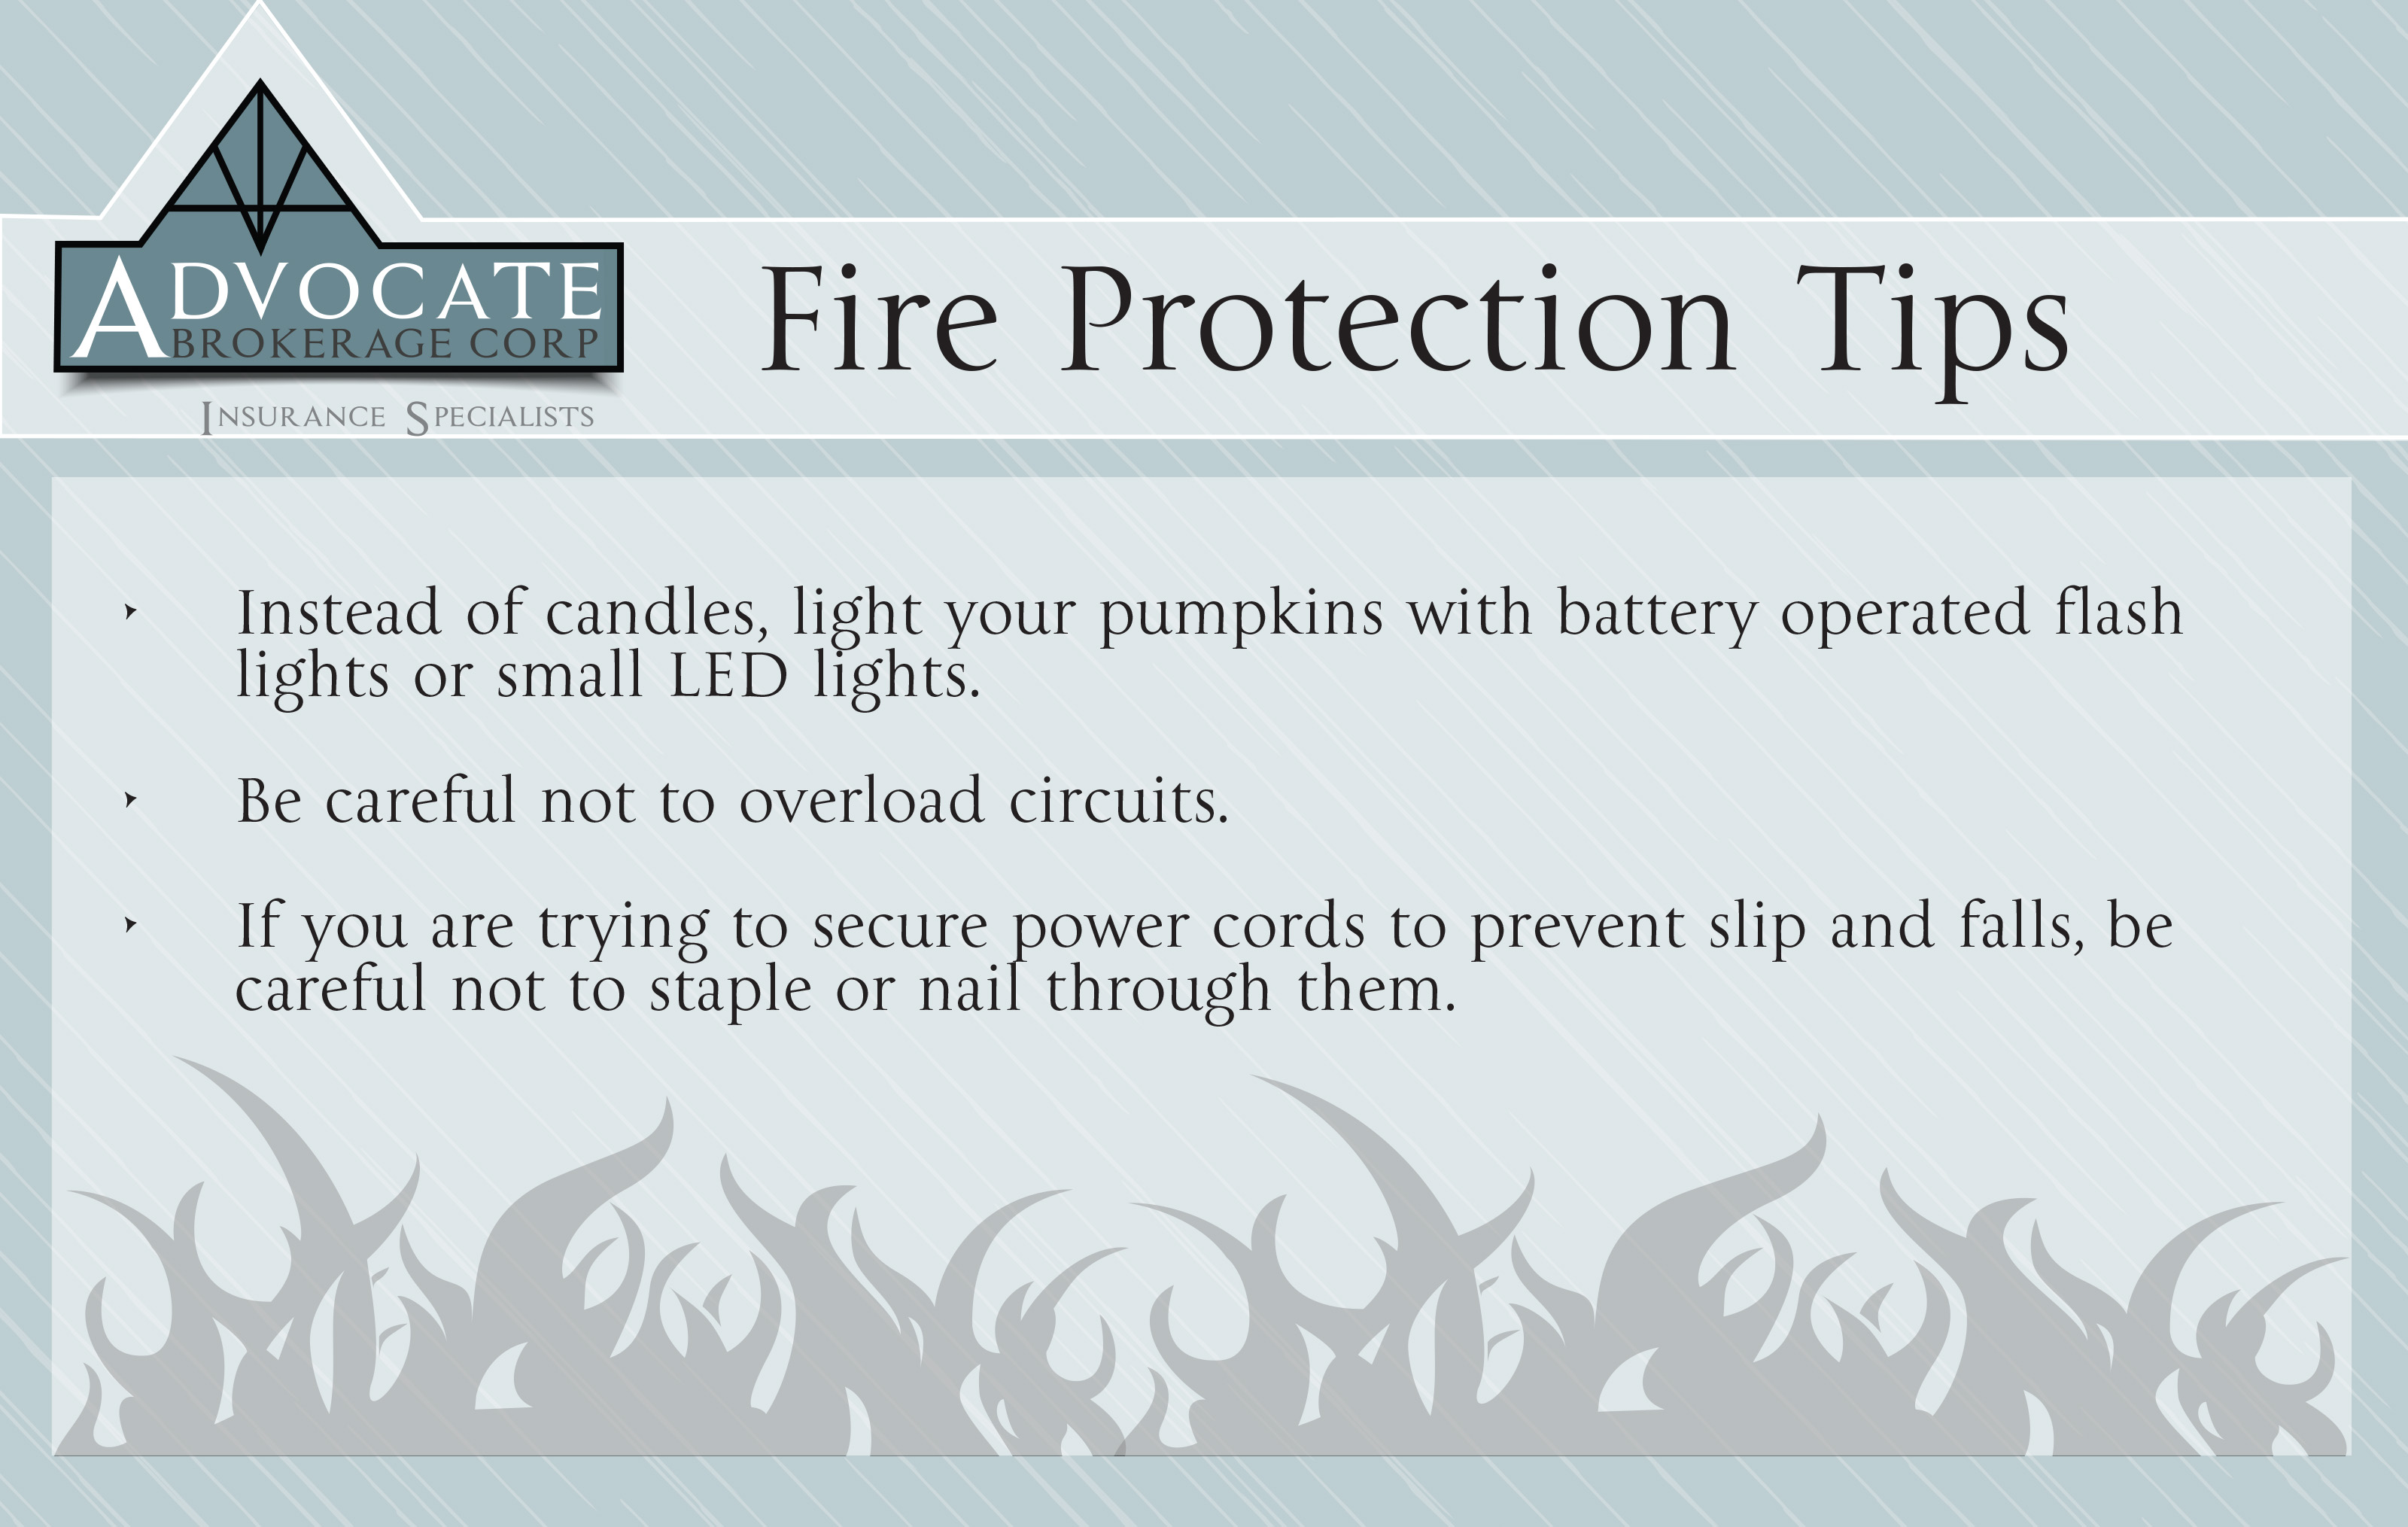 FireProtectionTips